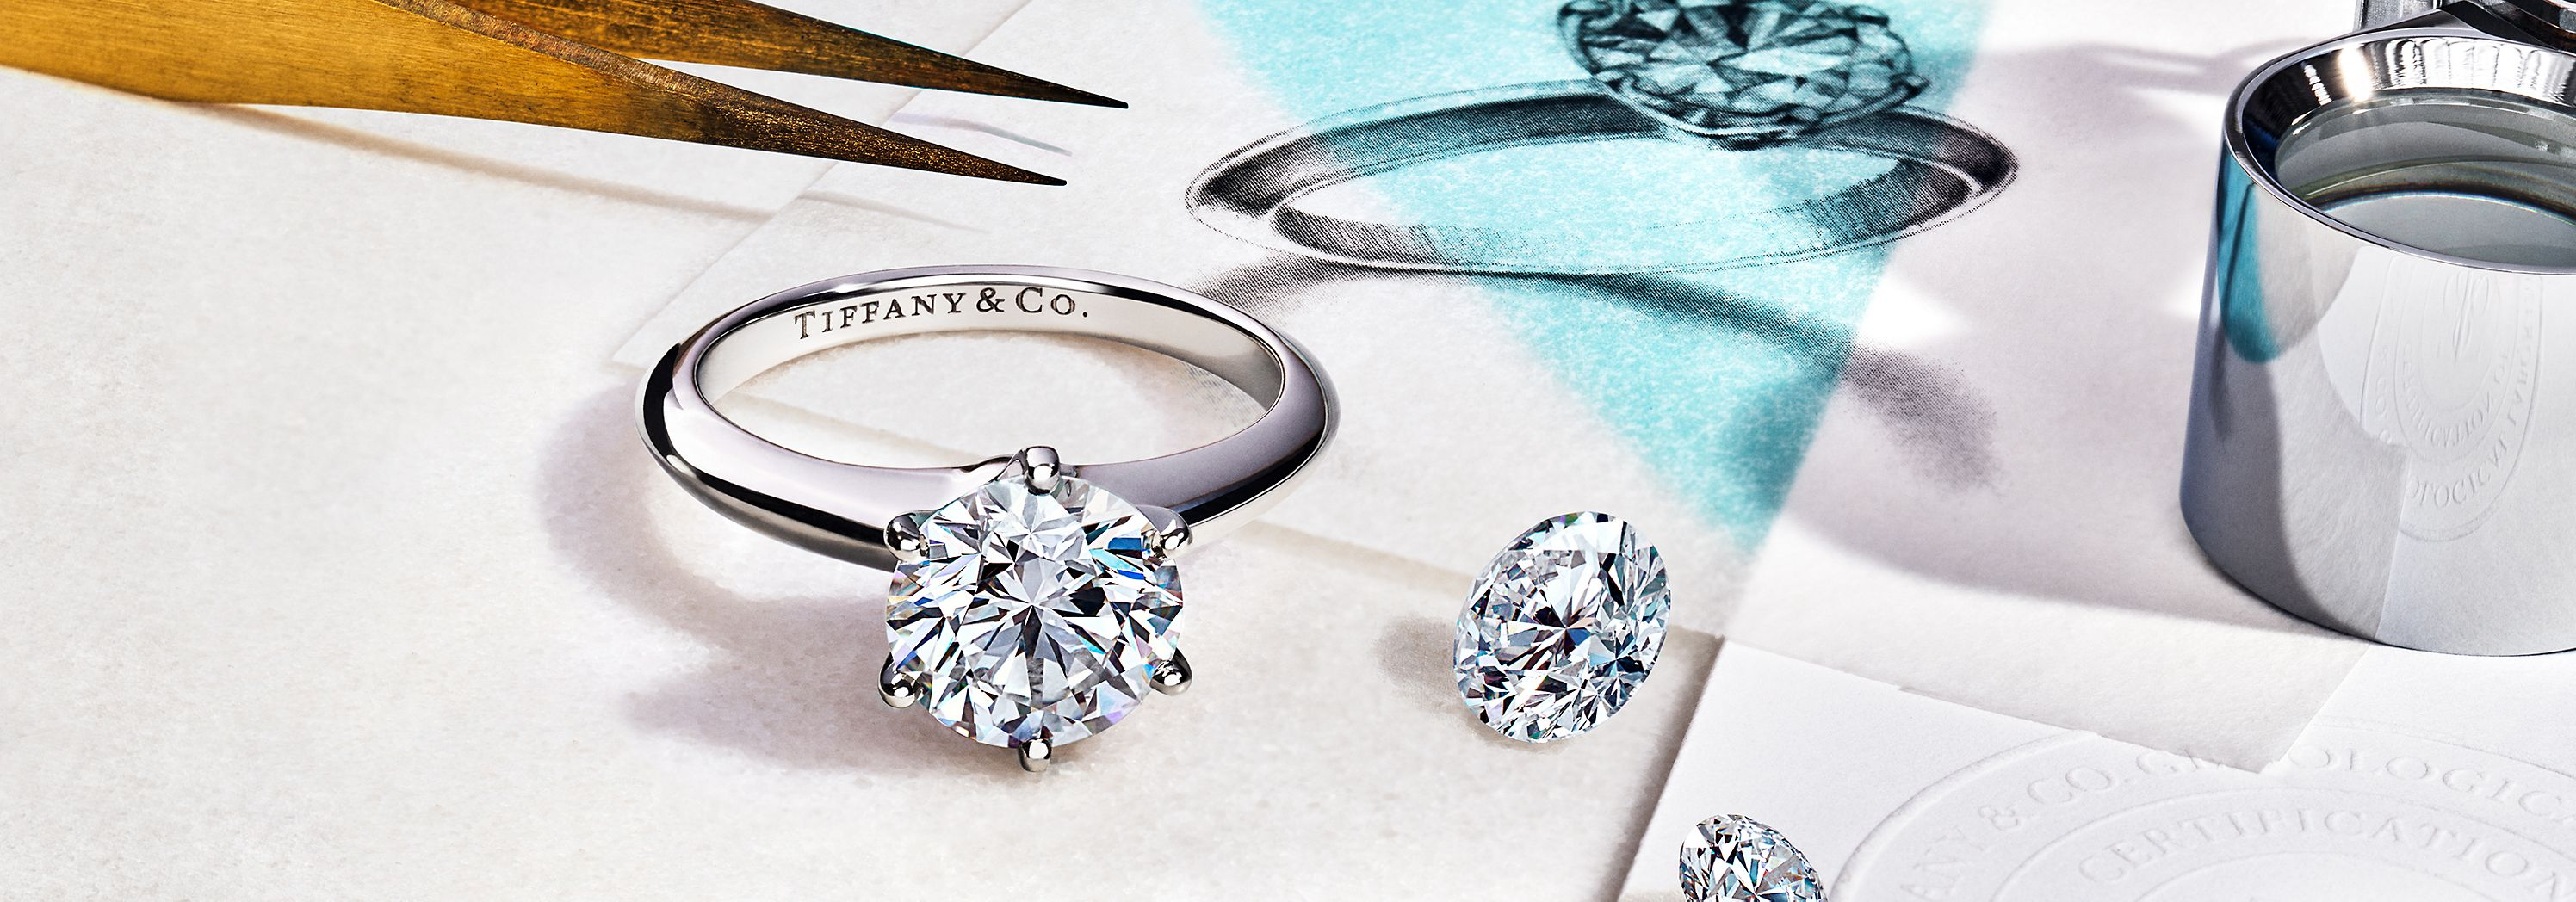 Tiffany® Setting Engagement Ring in Platinum